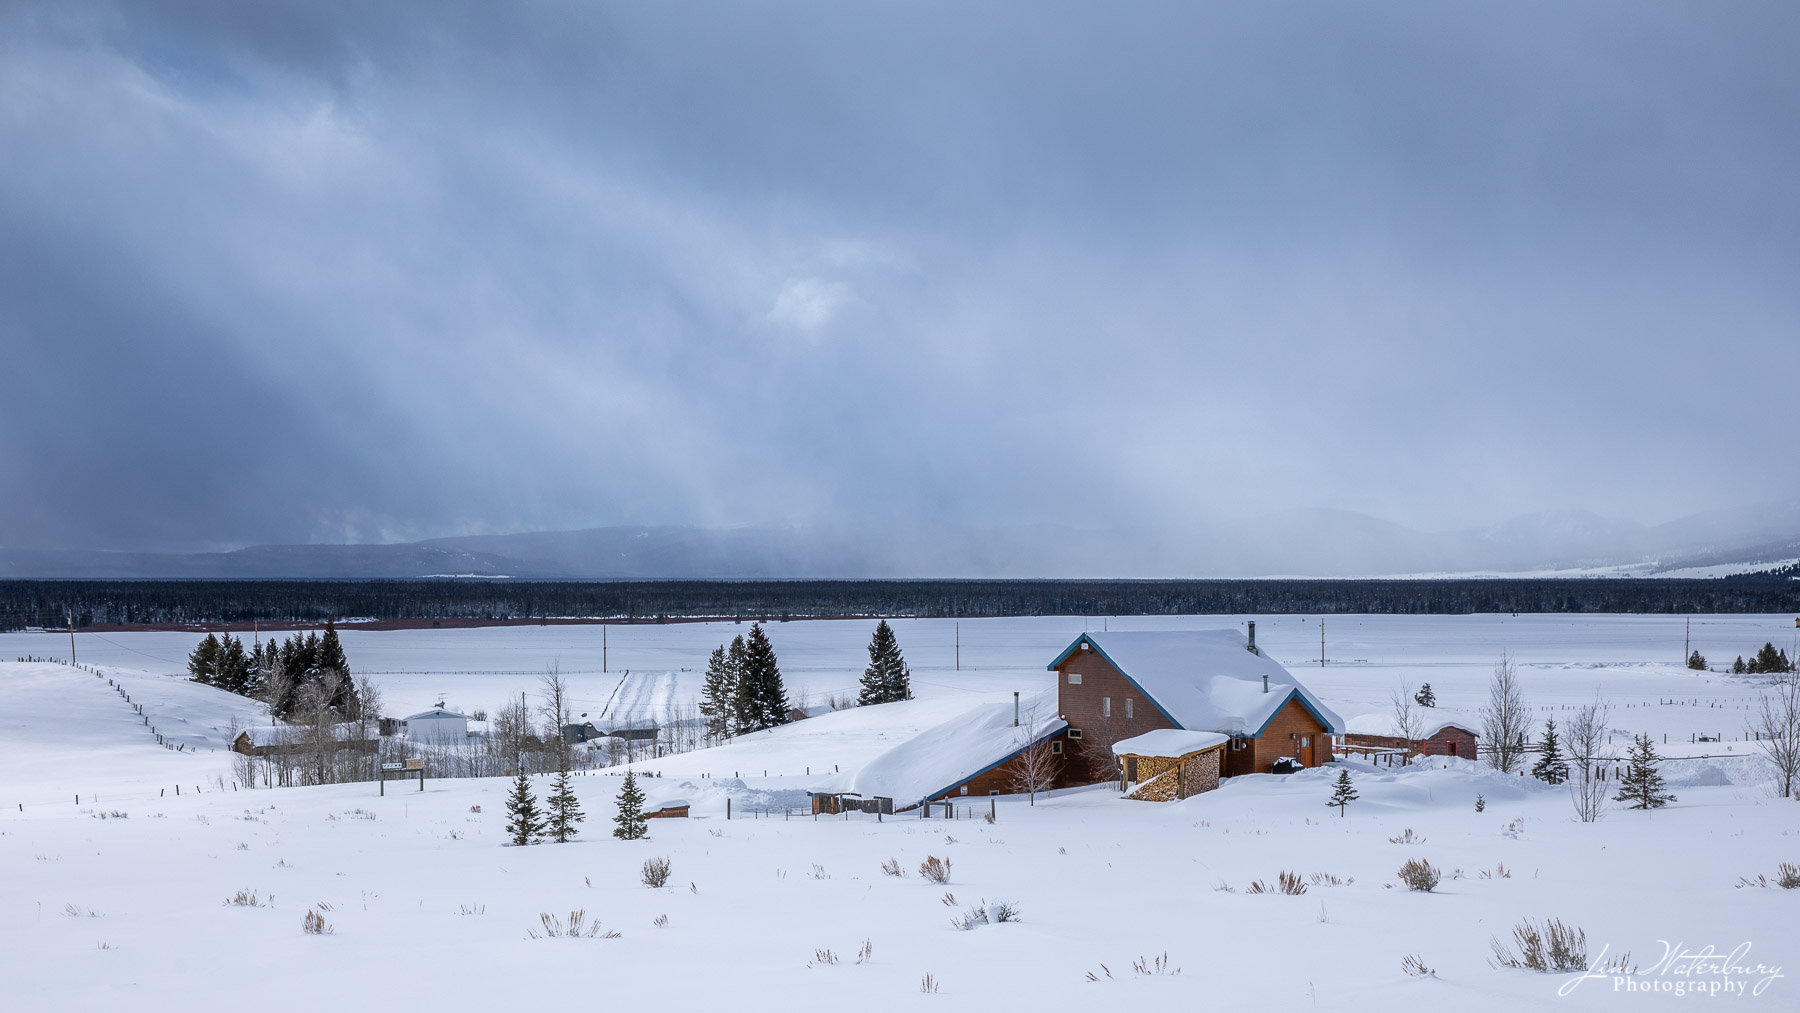 Farm outside West Yellowstone as a winter snowstorm begins to clear.